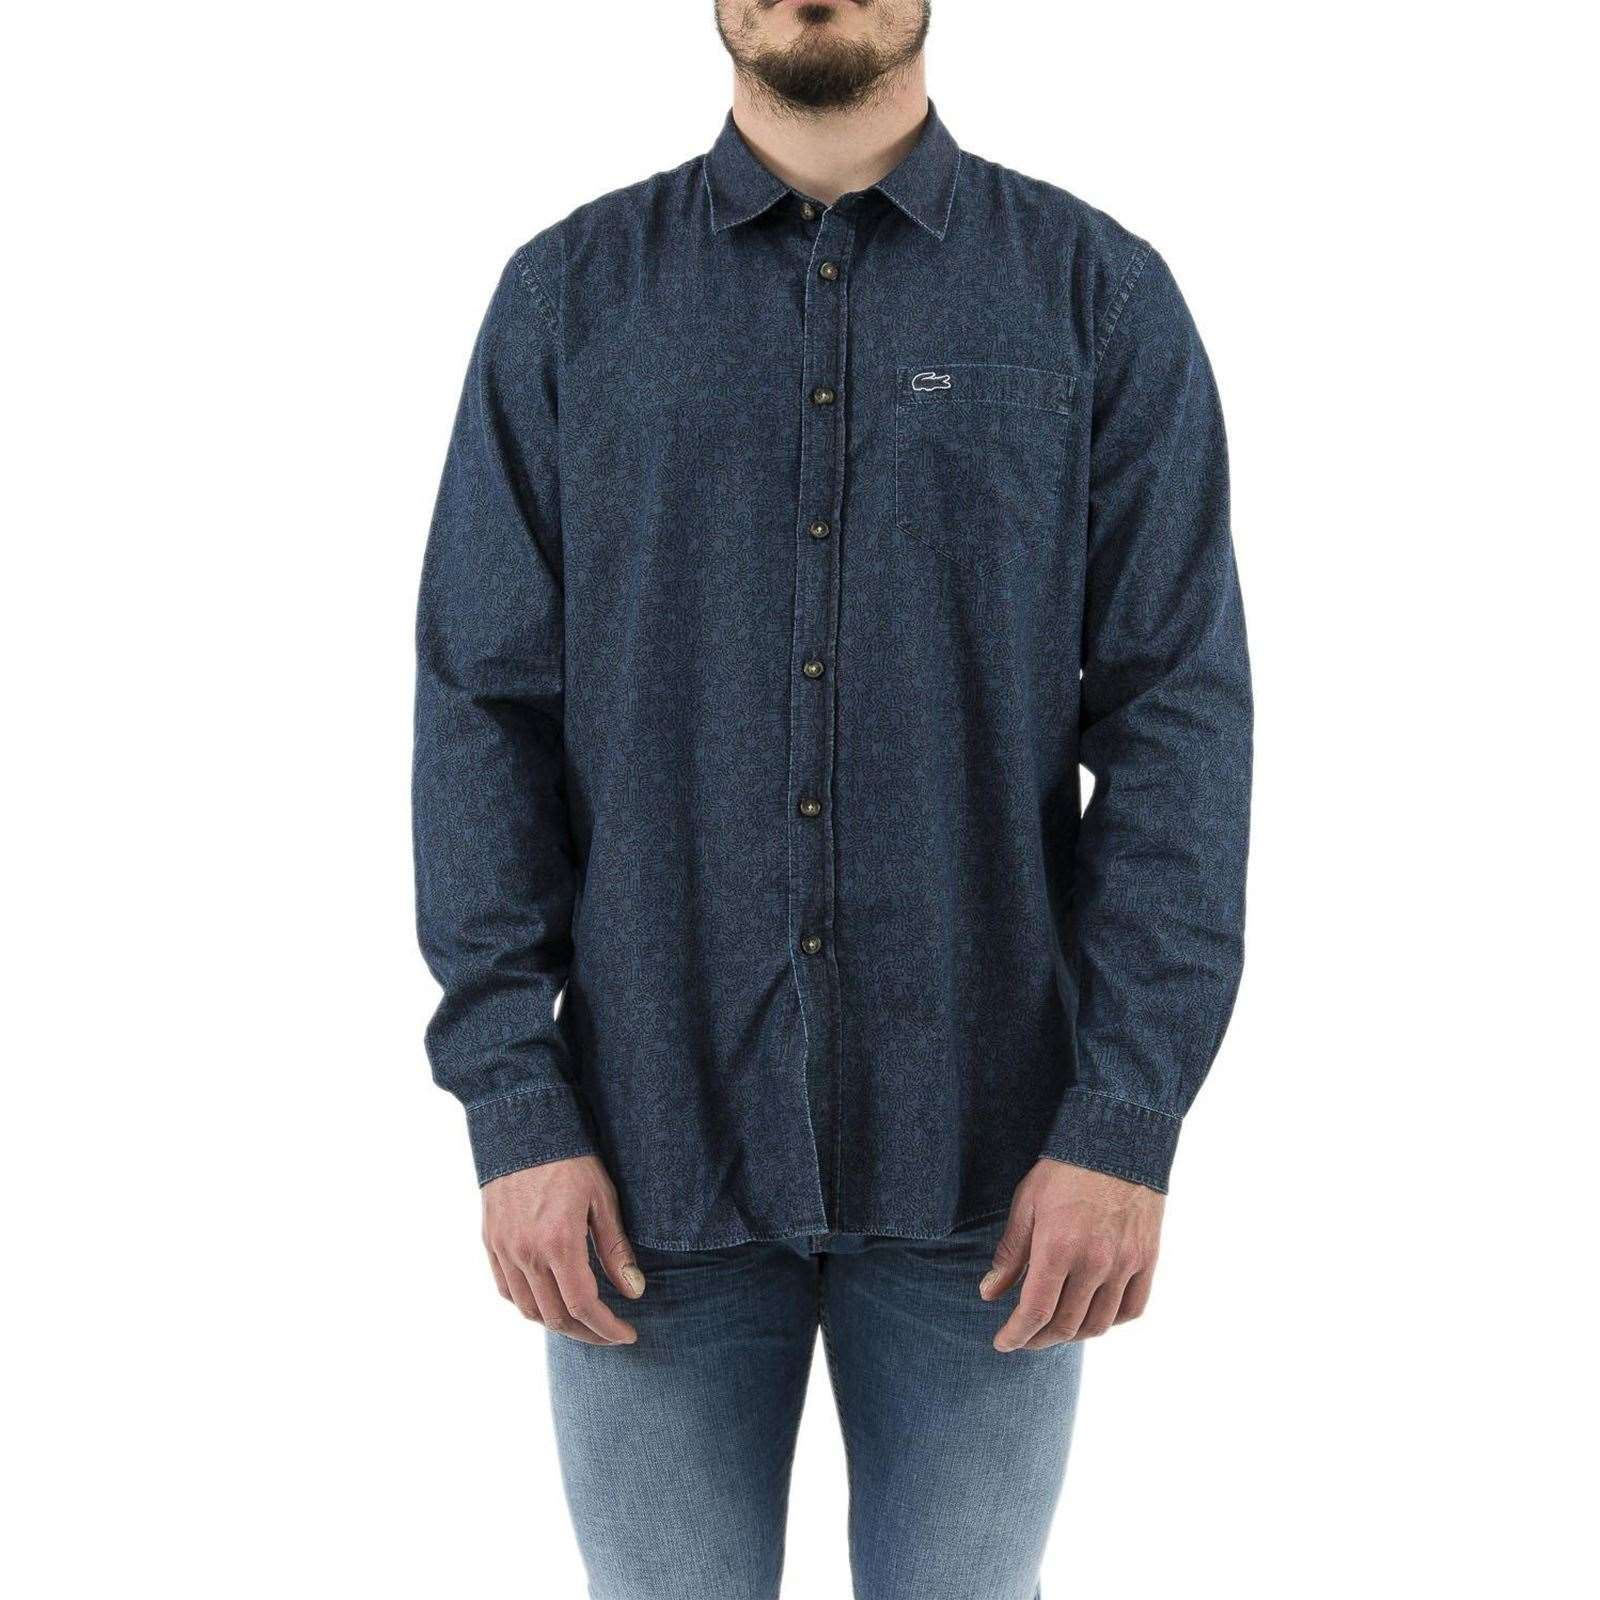 Homme Ch4884Chemise V Bleu Manches Longues Lacoste ZiTlwPkuOX